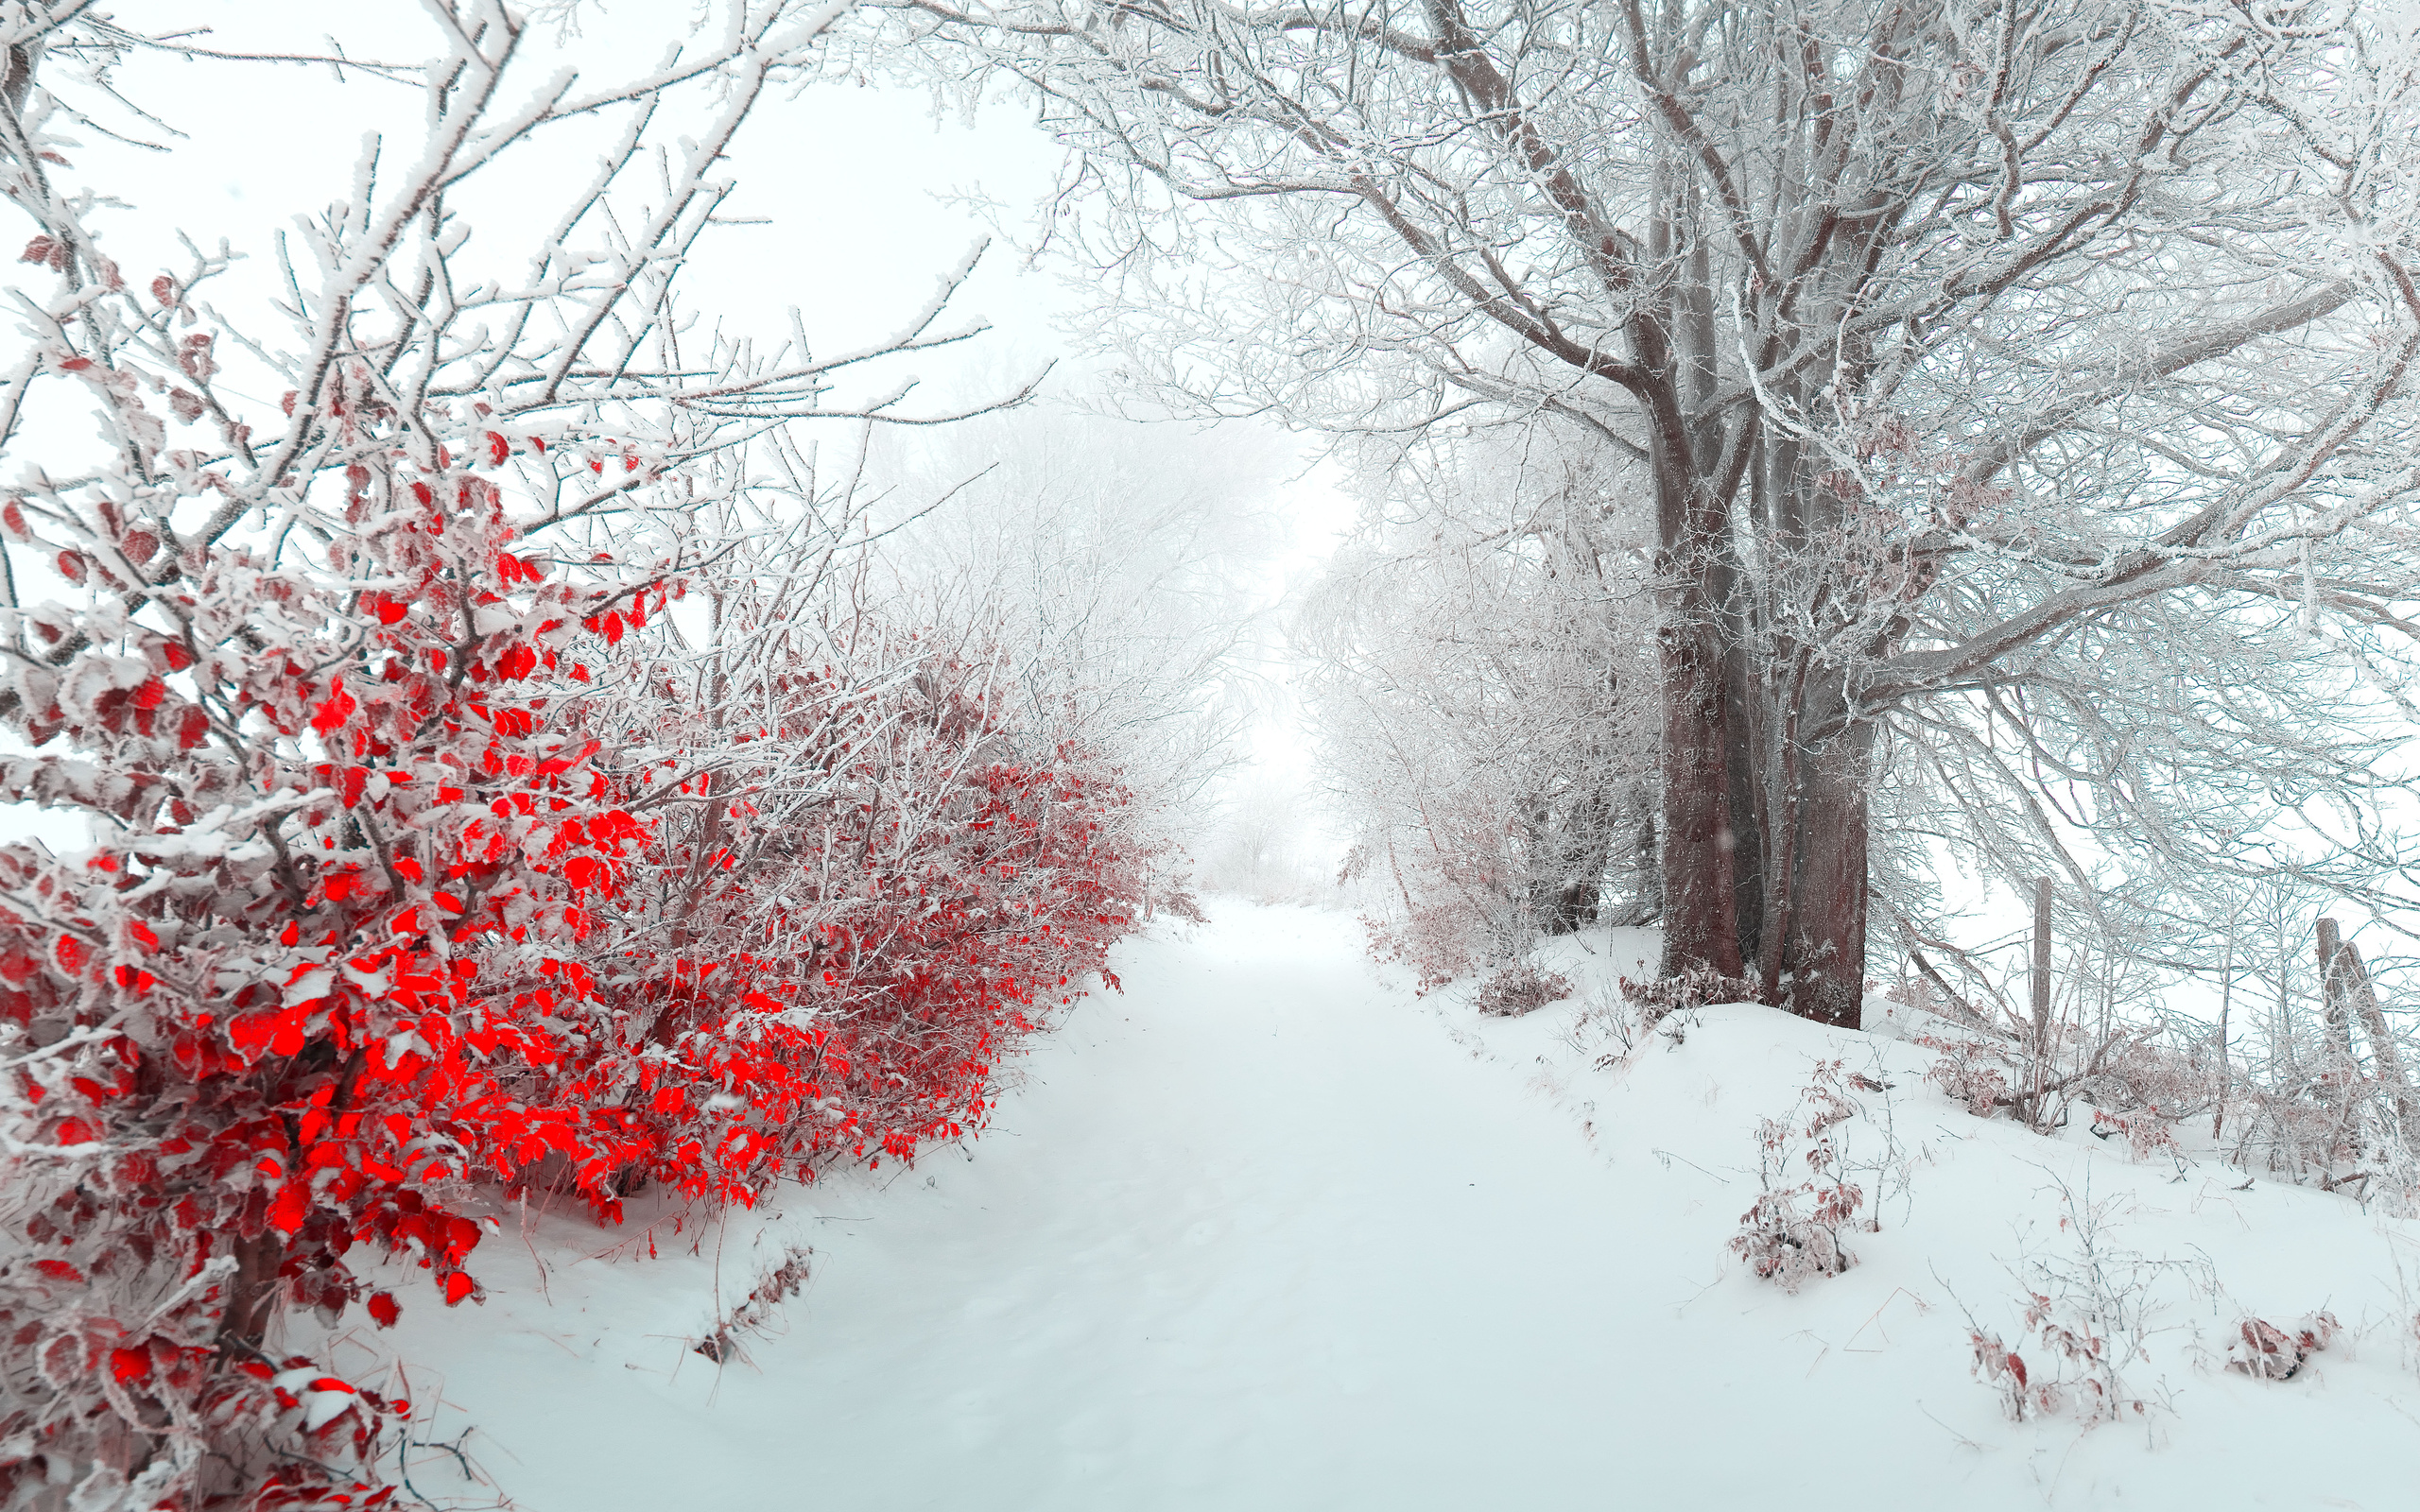 snowy nature wallpaper - photo #39